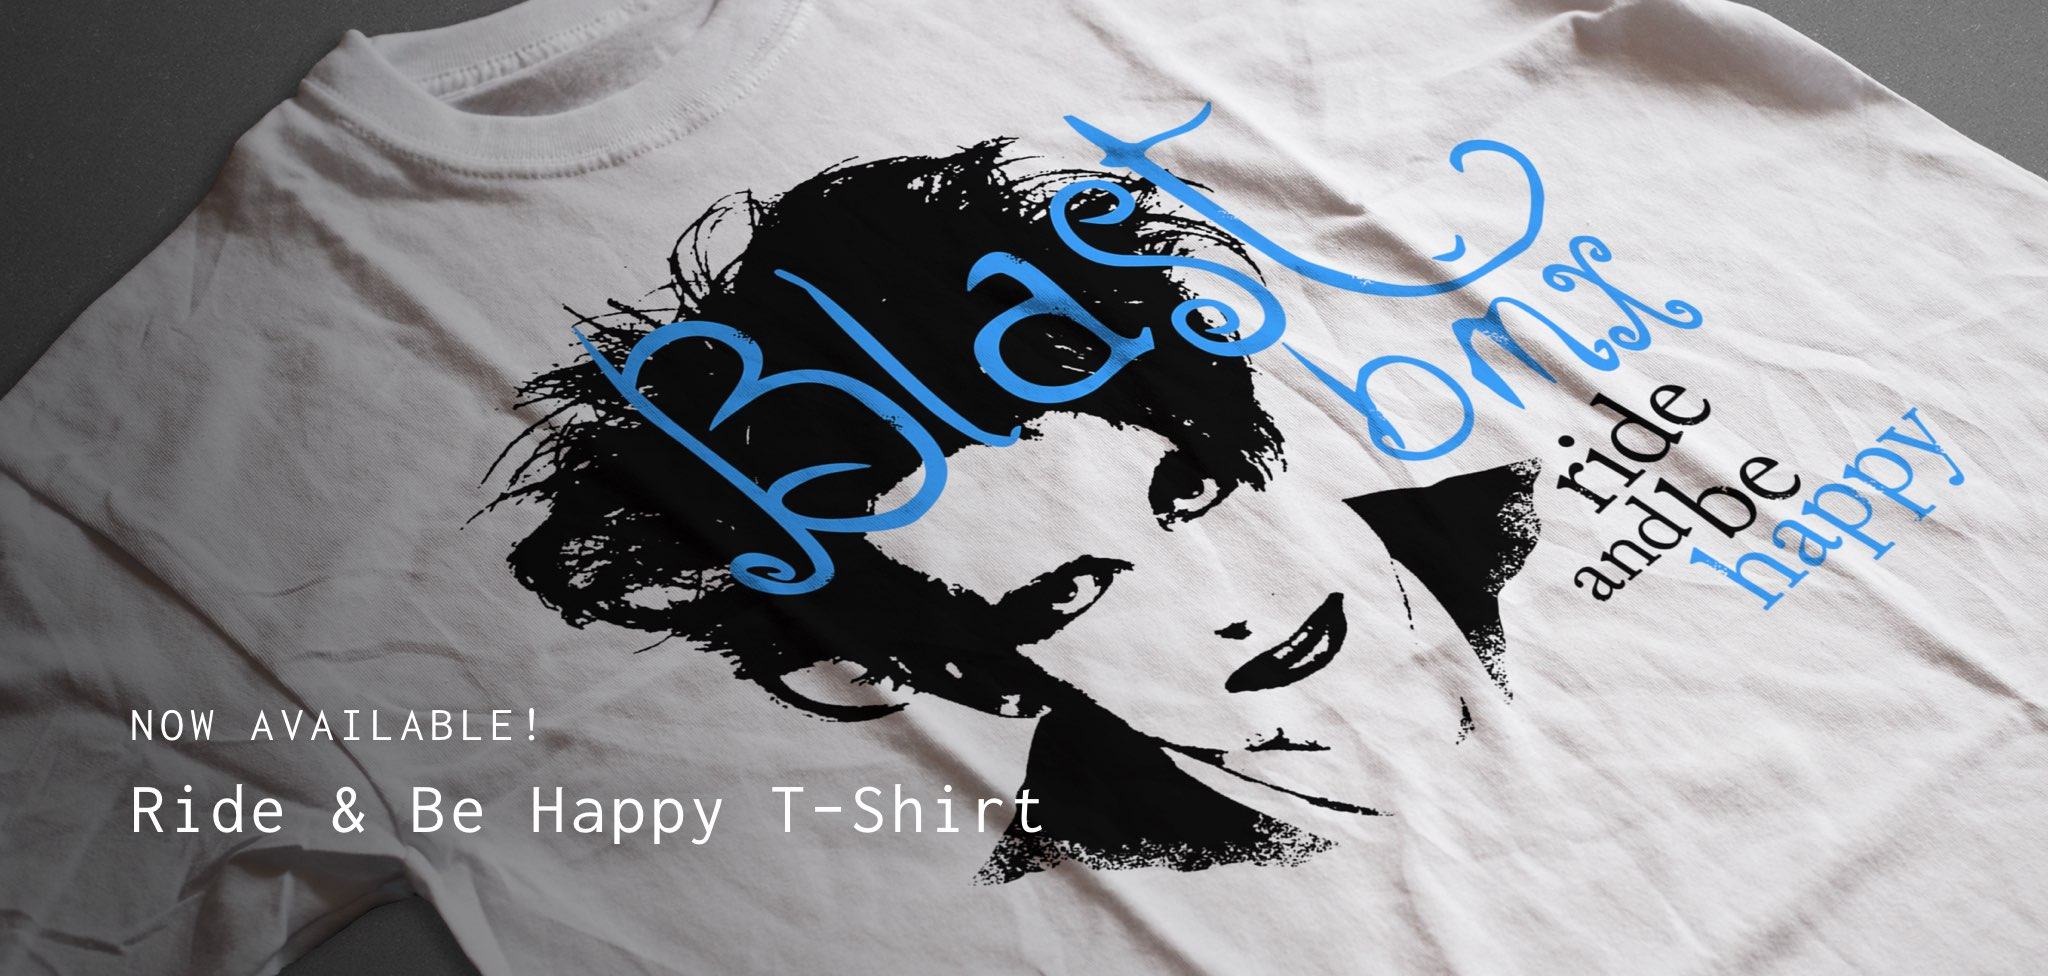 Now Available - Ride and Be Happy T-Shirt